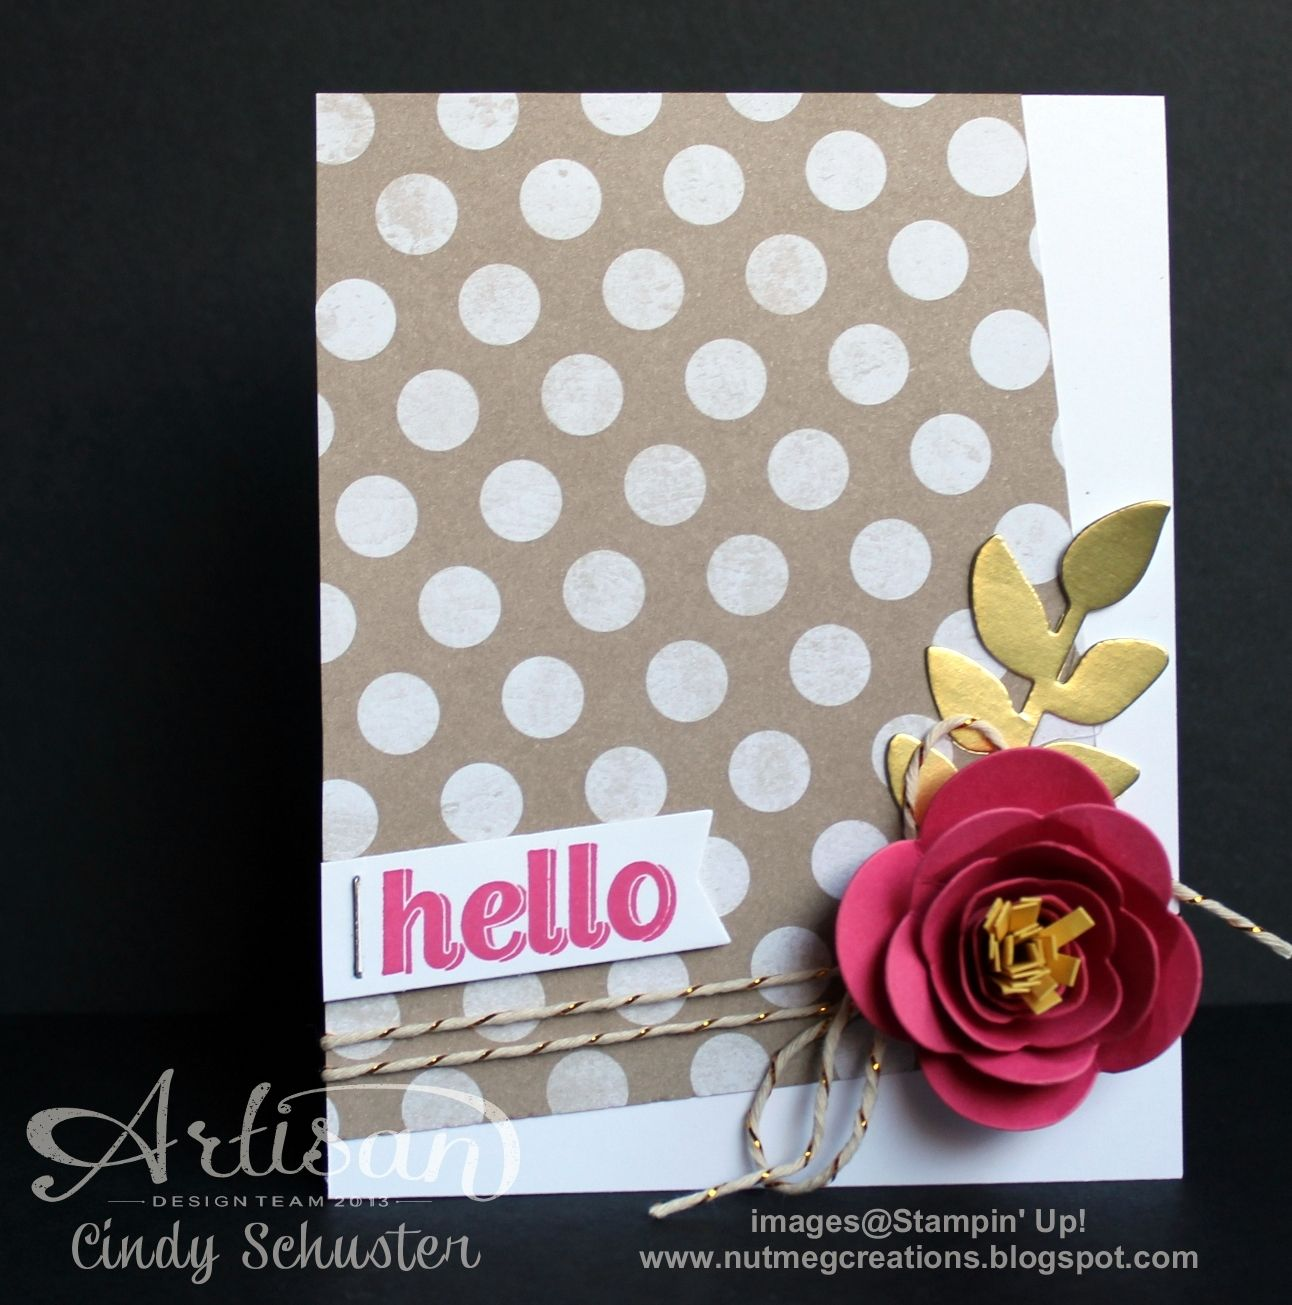 Great card flowers cards pinterest cards artisan and card ideas